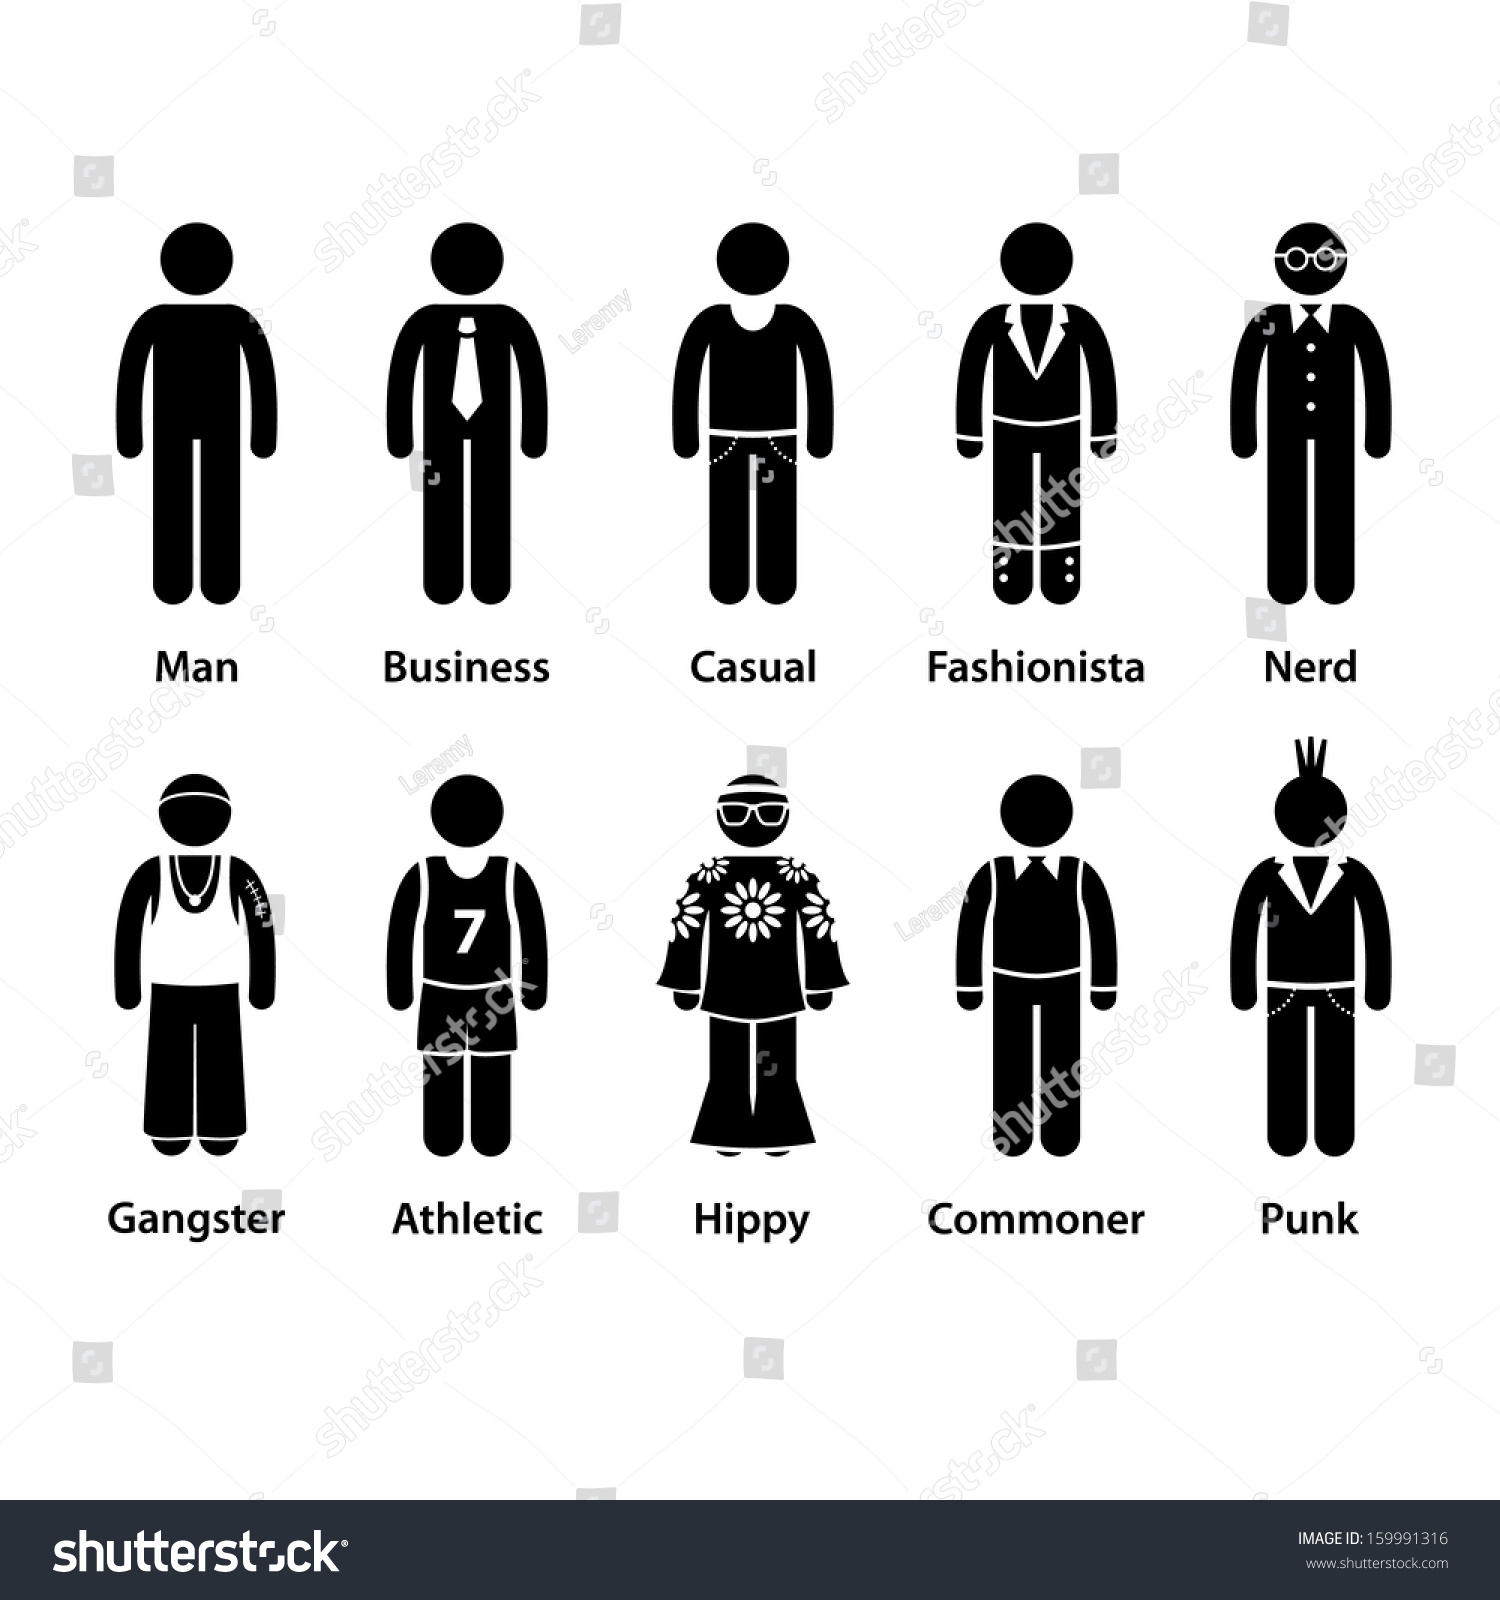 people man human character type business stock vector  people man human character type business casual punk nerd gangster athletic hippy commoner fashionista stick figure